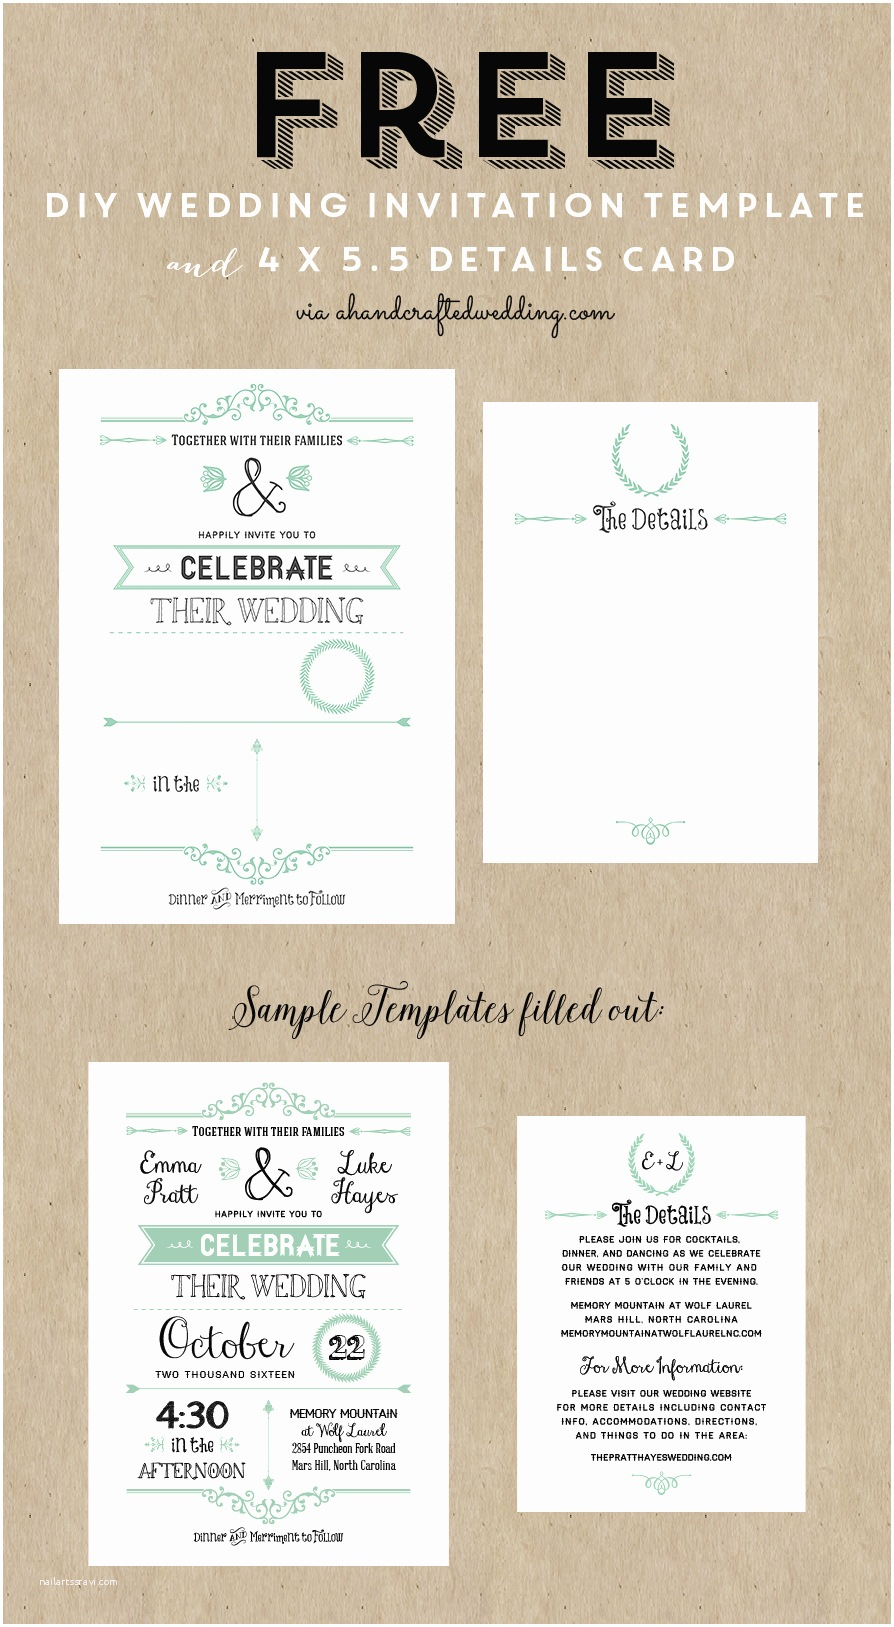 Free Email Wedding Invitation Templates Free Printable Wedding Invitation Template